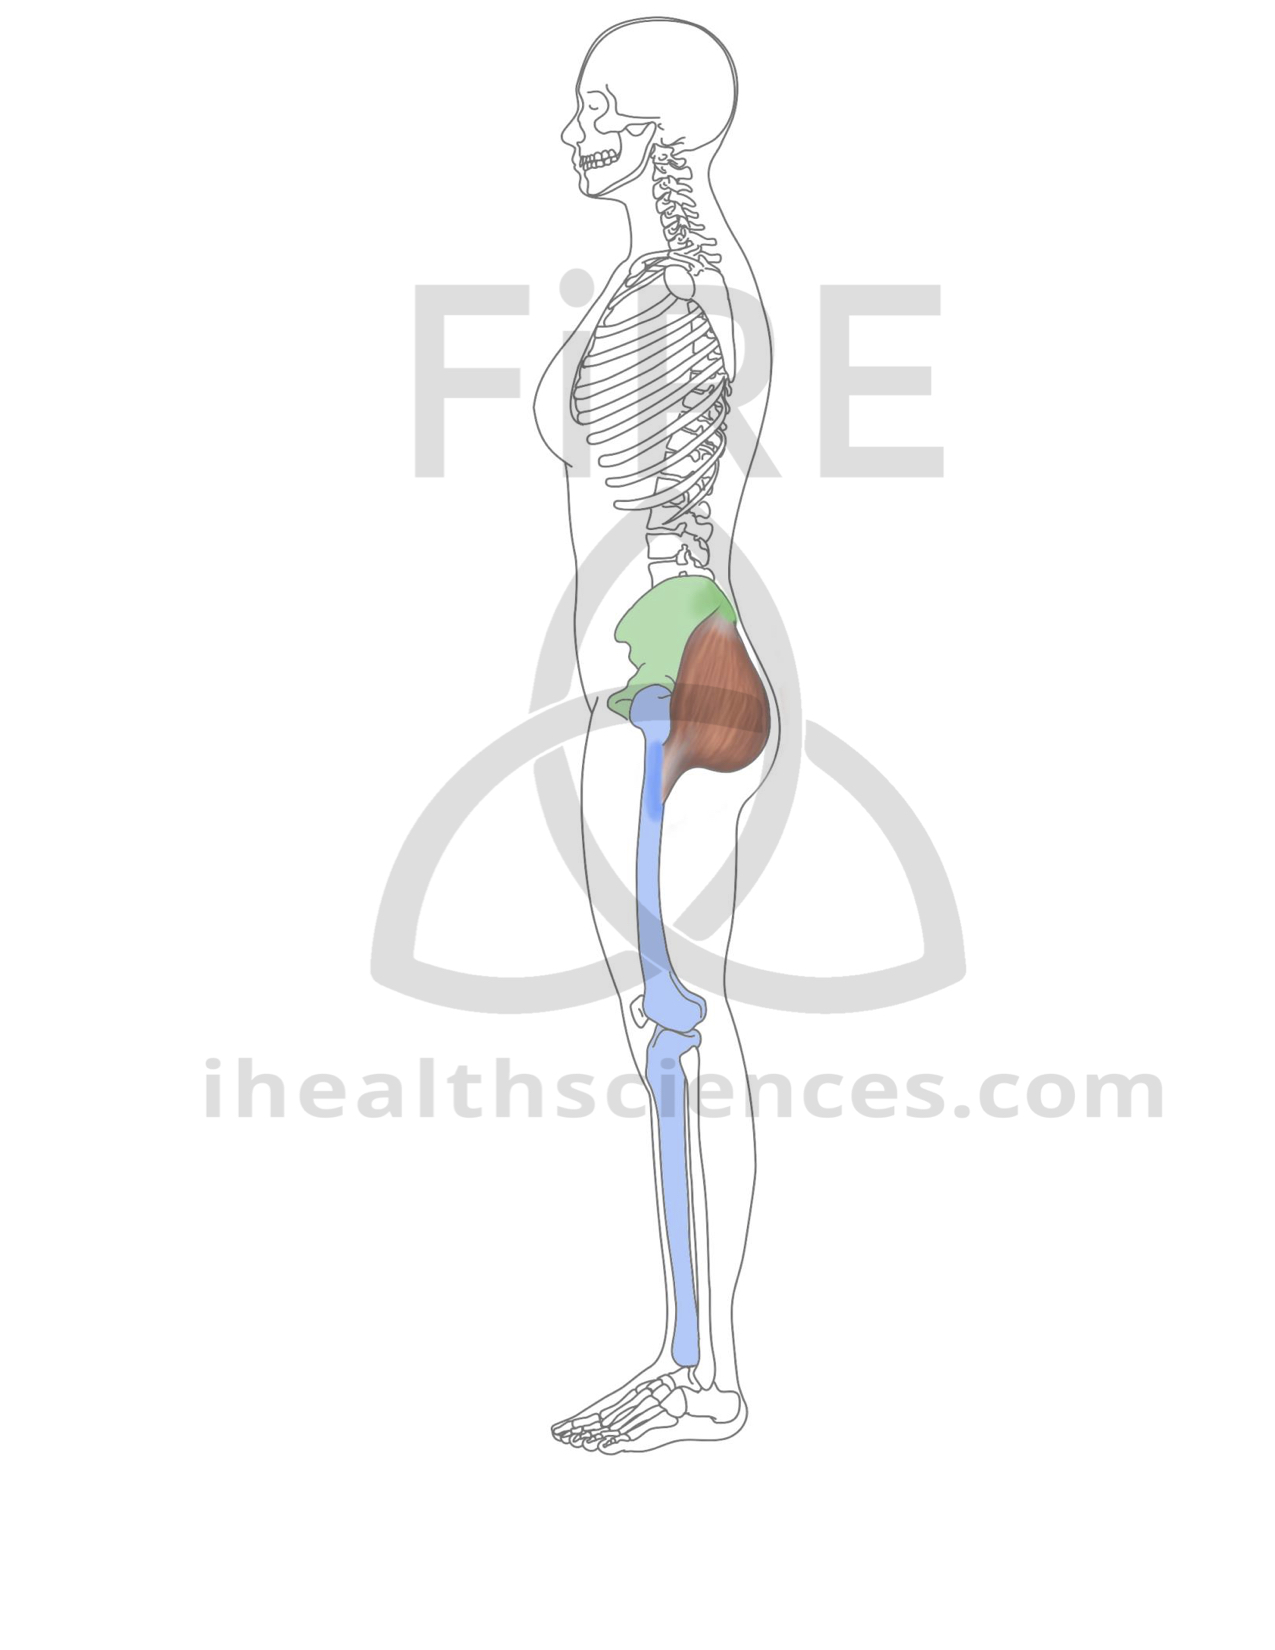 gluteus maximus (lateral, no IT band).jpg